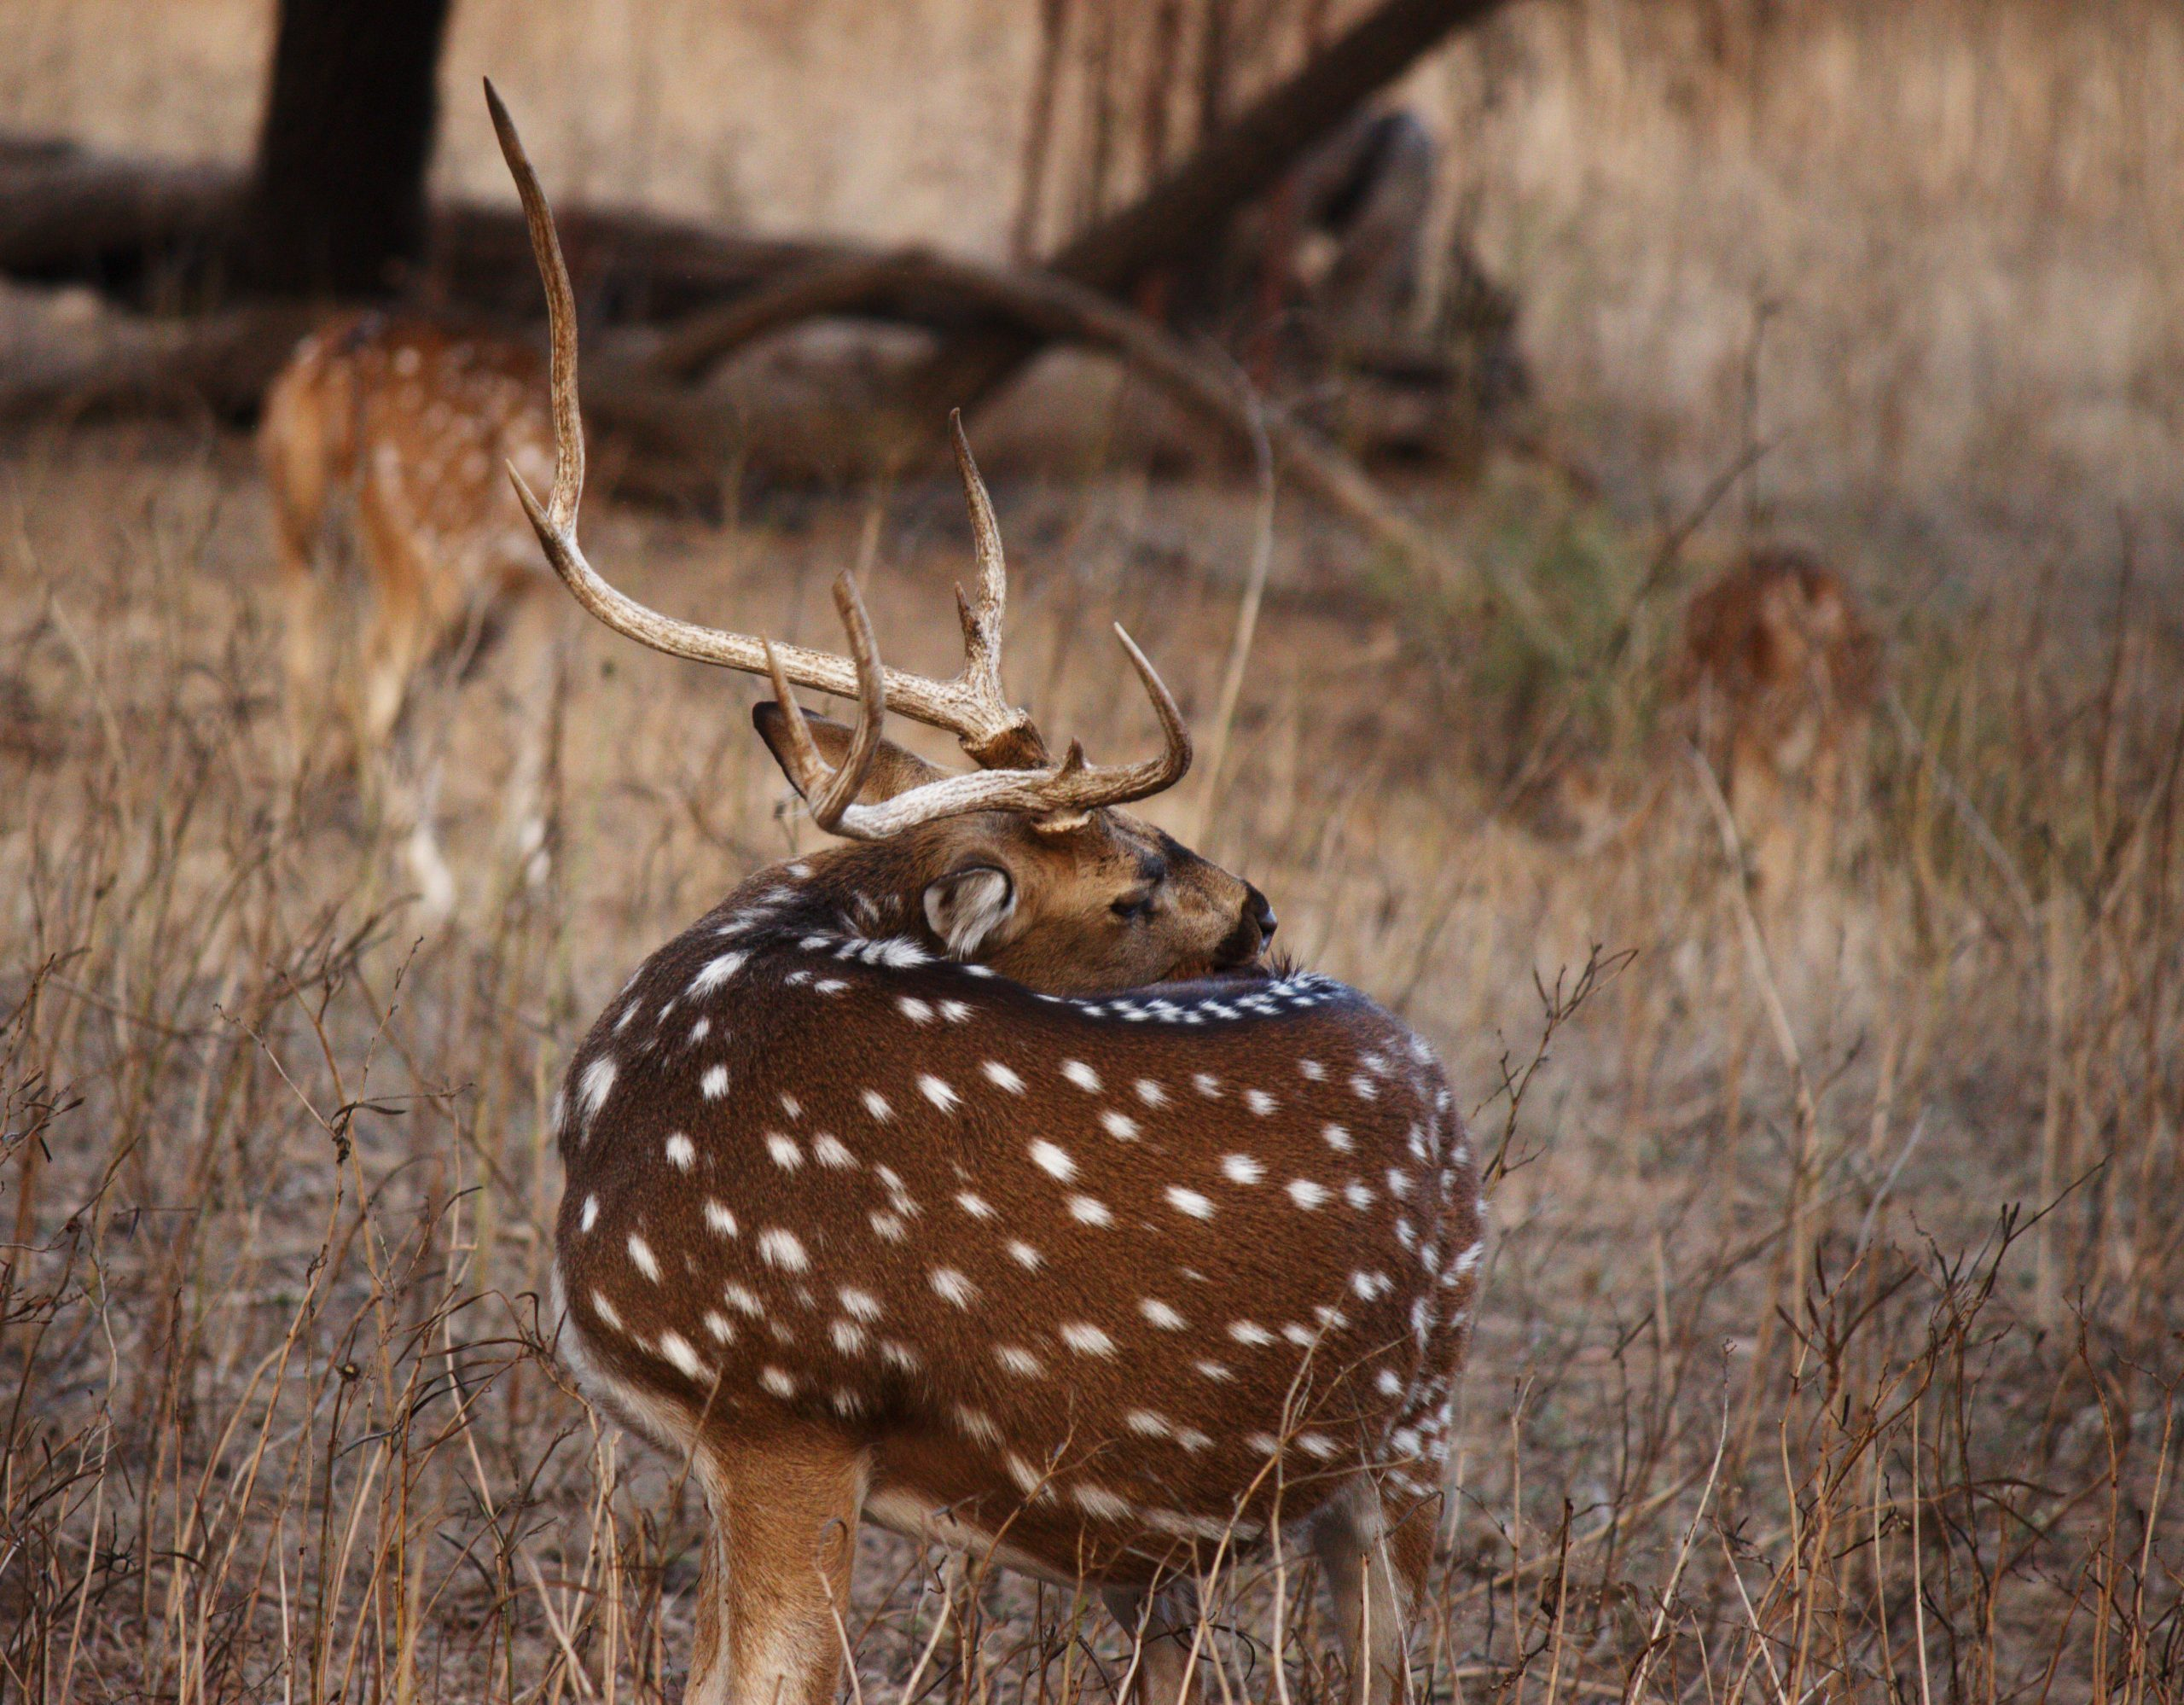 Beautifully spotted deers in the forest